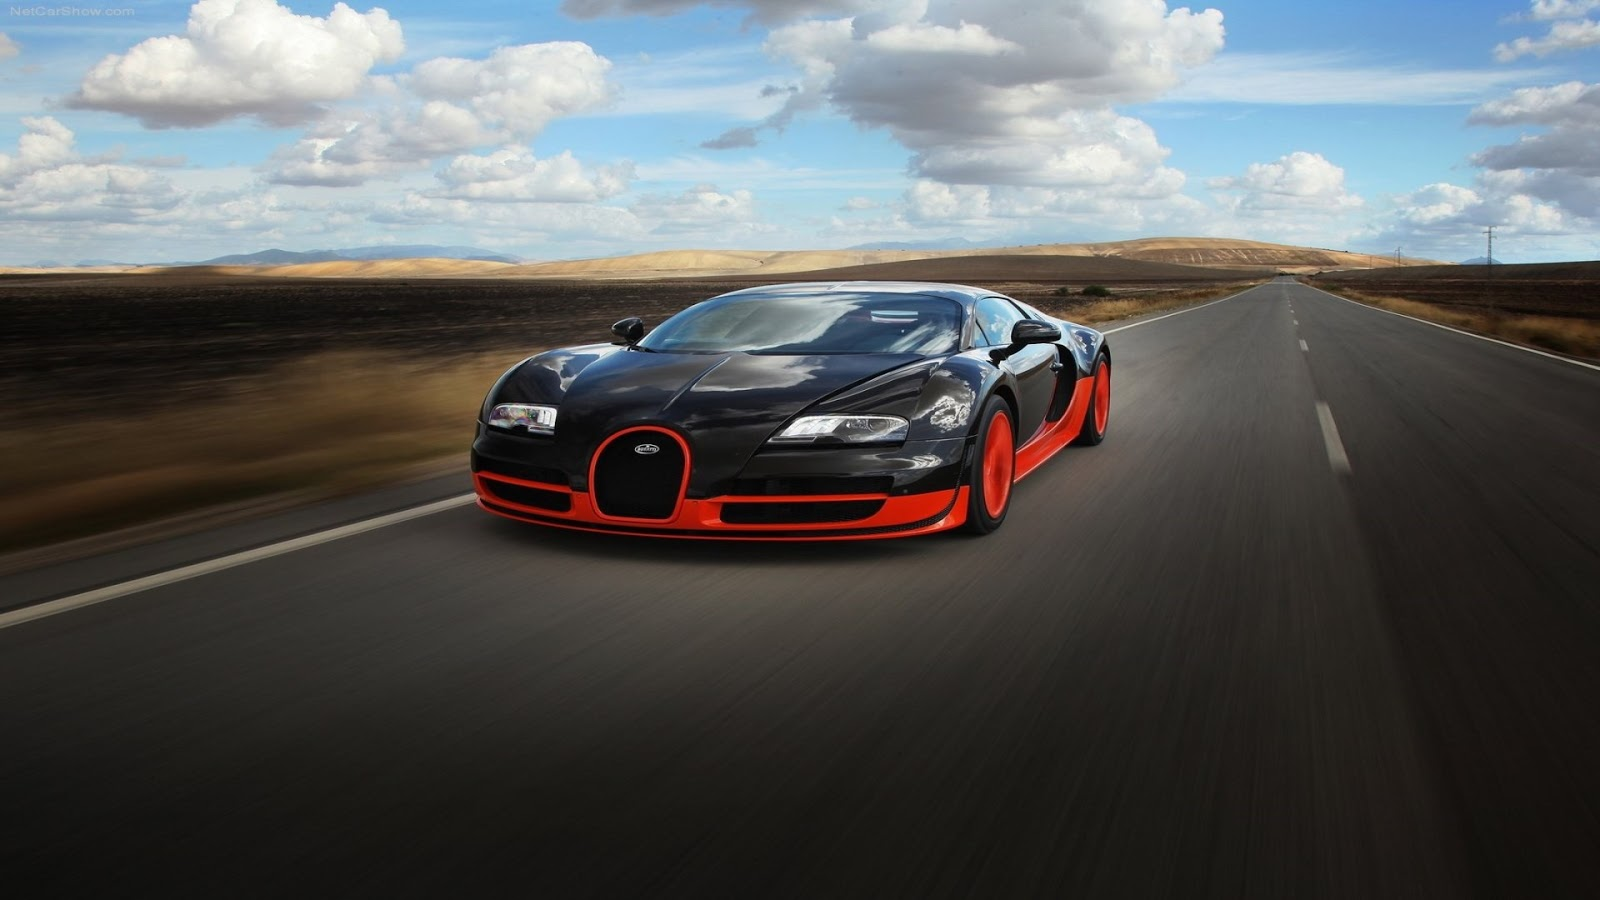 bugatti veyron sports cars hd wallpapers download 1080p. Black Bedroom Furniture Sets. Home Design Ideas